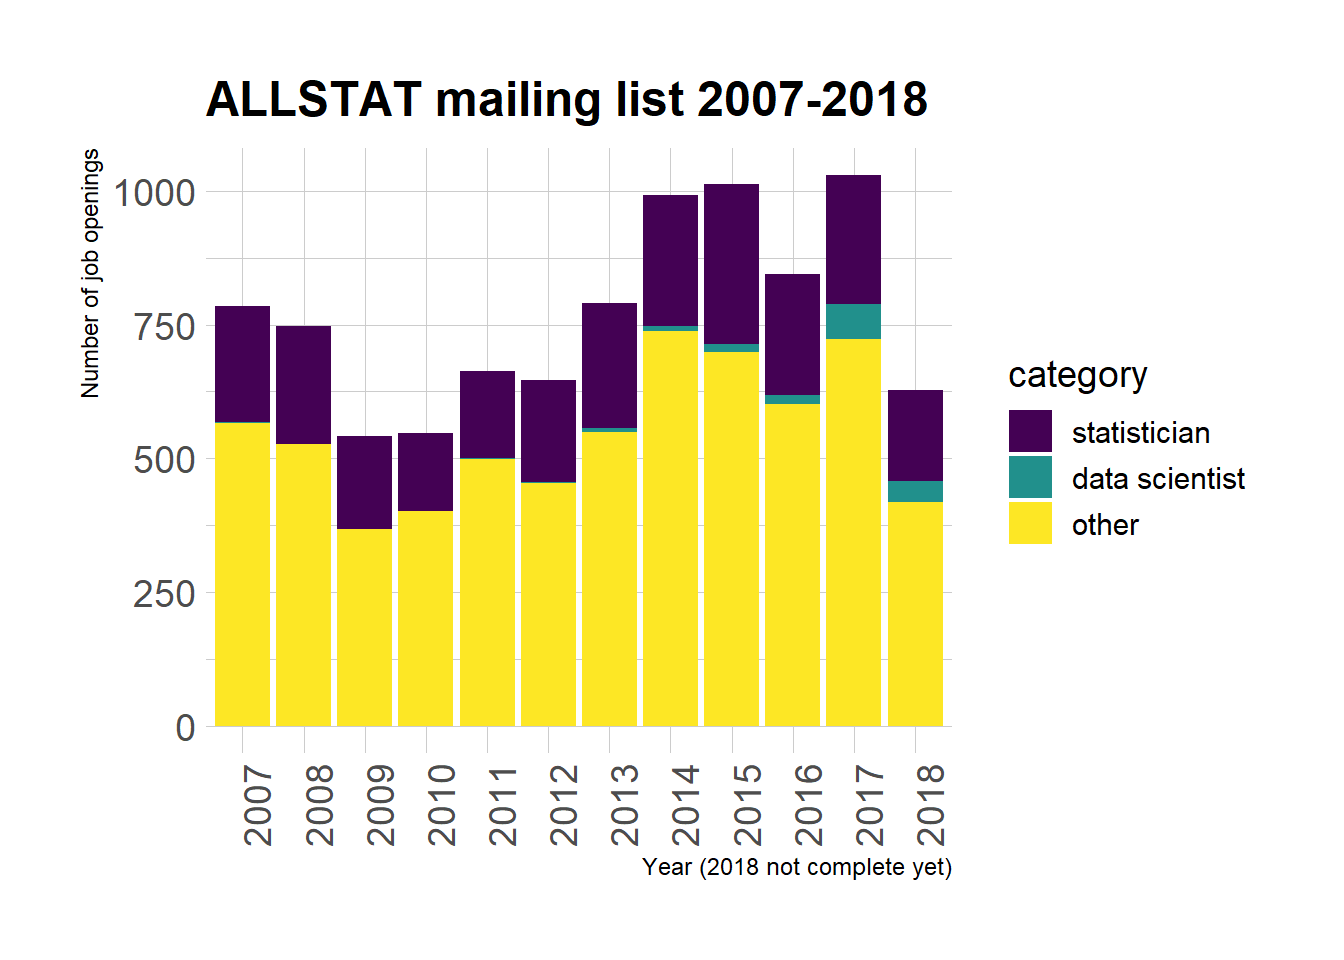 ALLSTATisticians in decline? A polite look at ALLSTAT email Archives